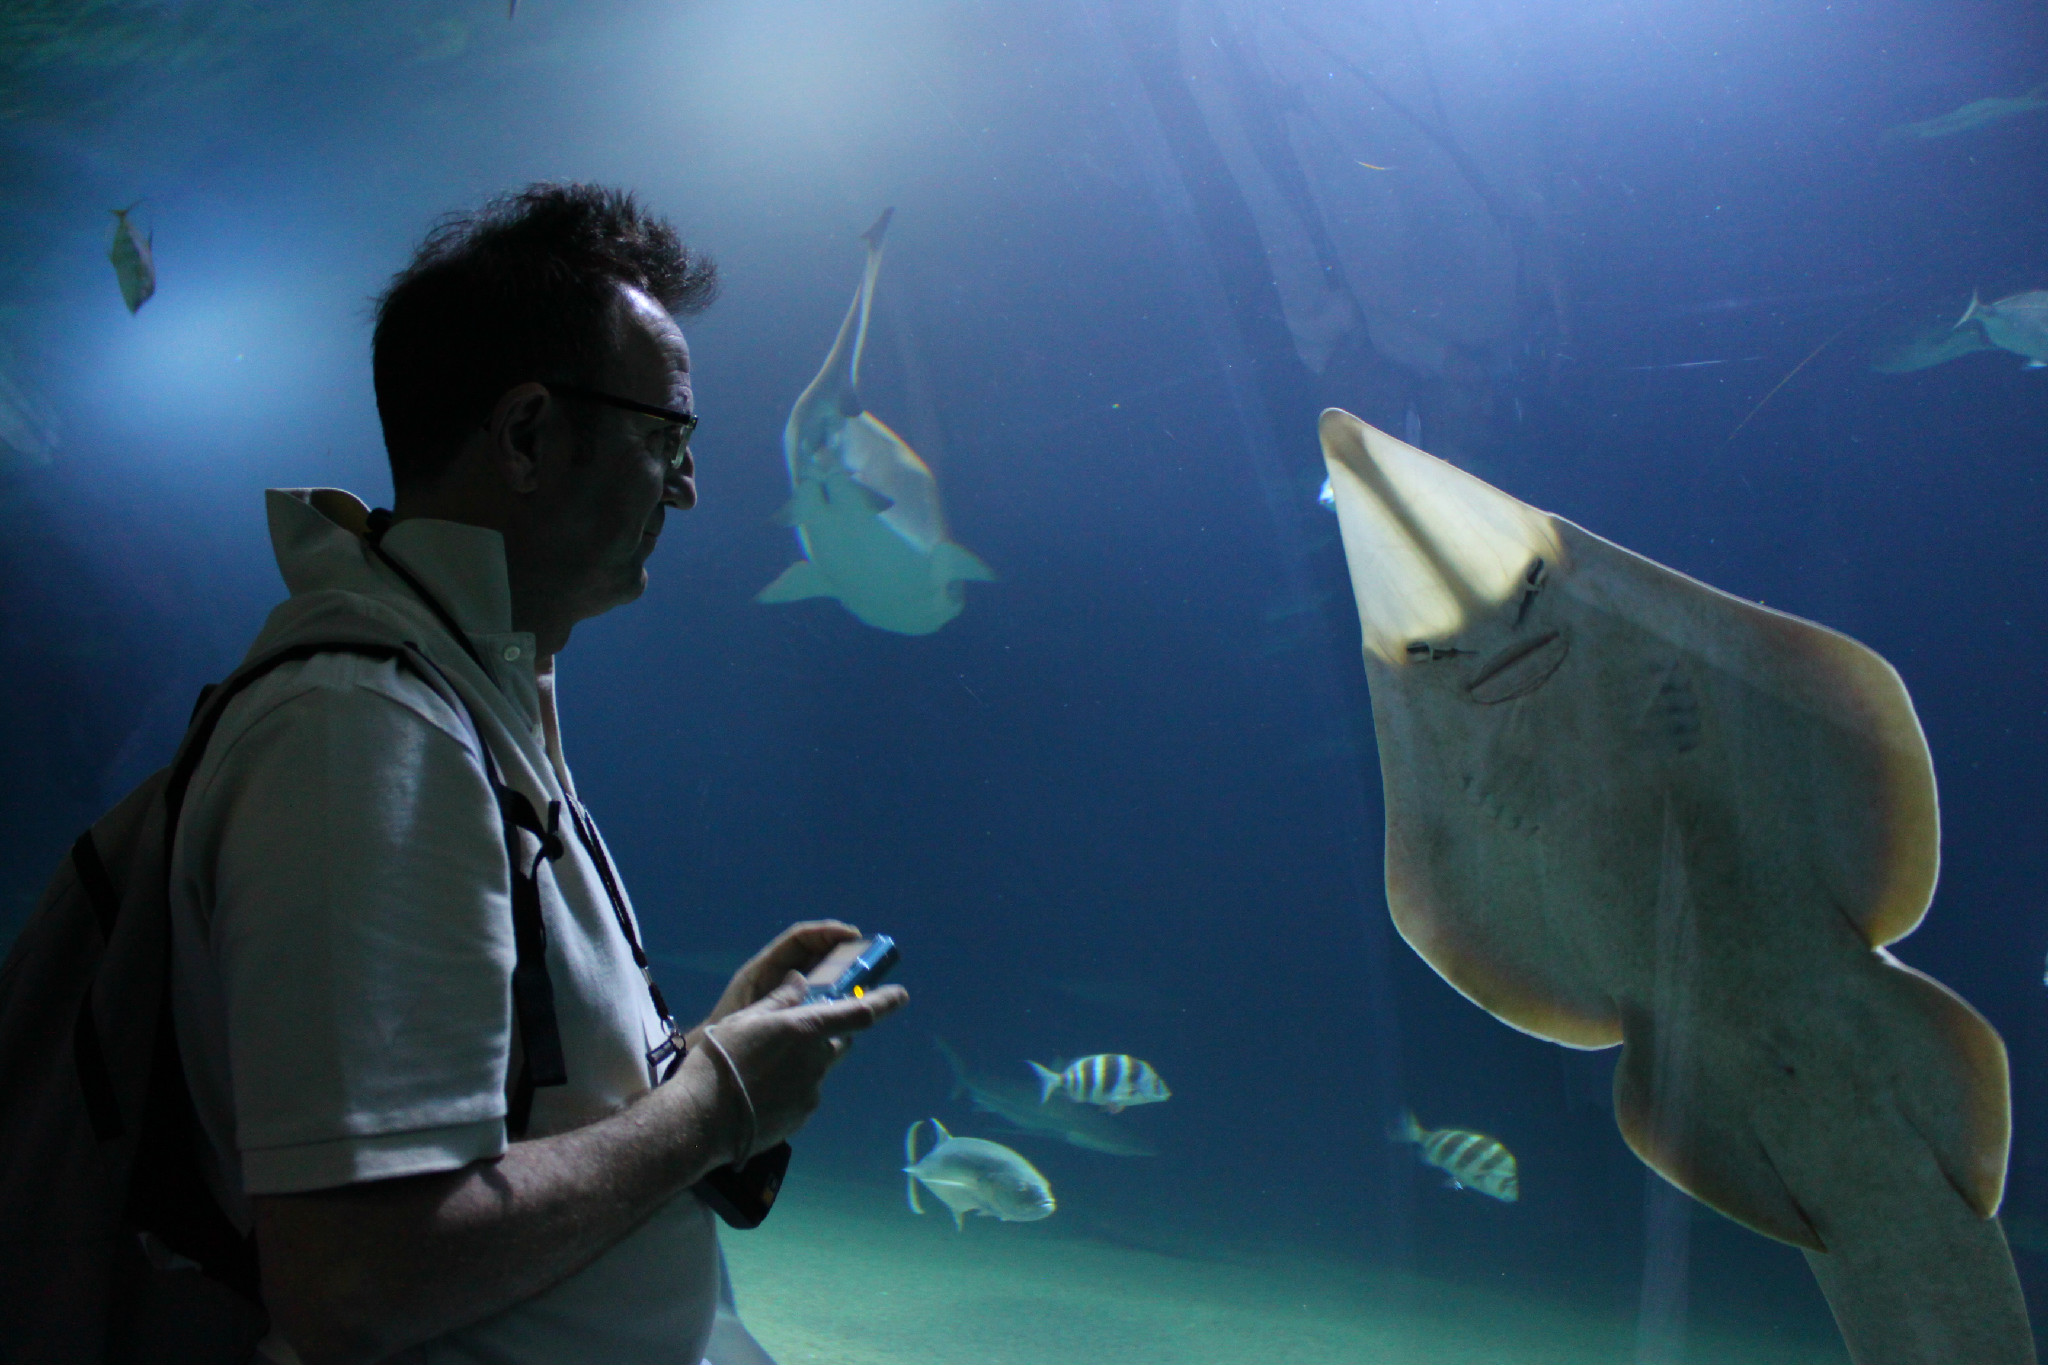 capture the colour contest - blue - manta ray whit my dad in valencia spain